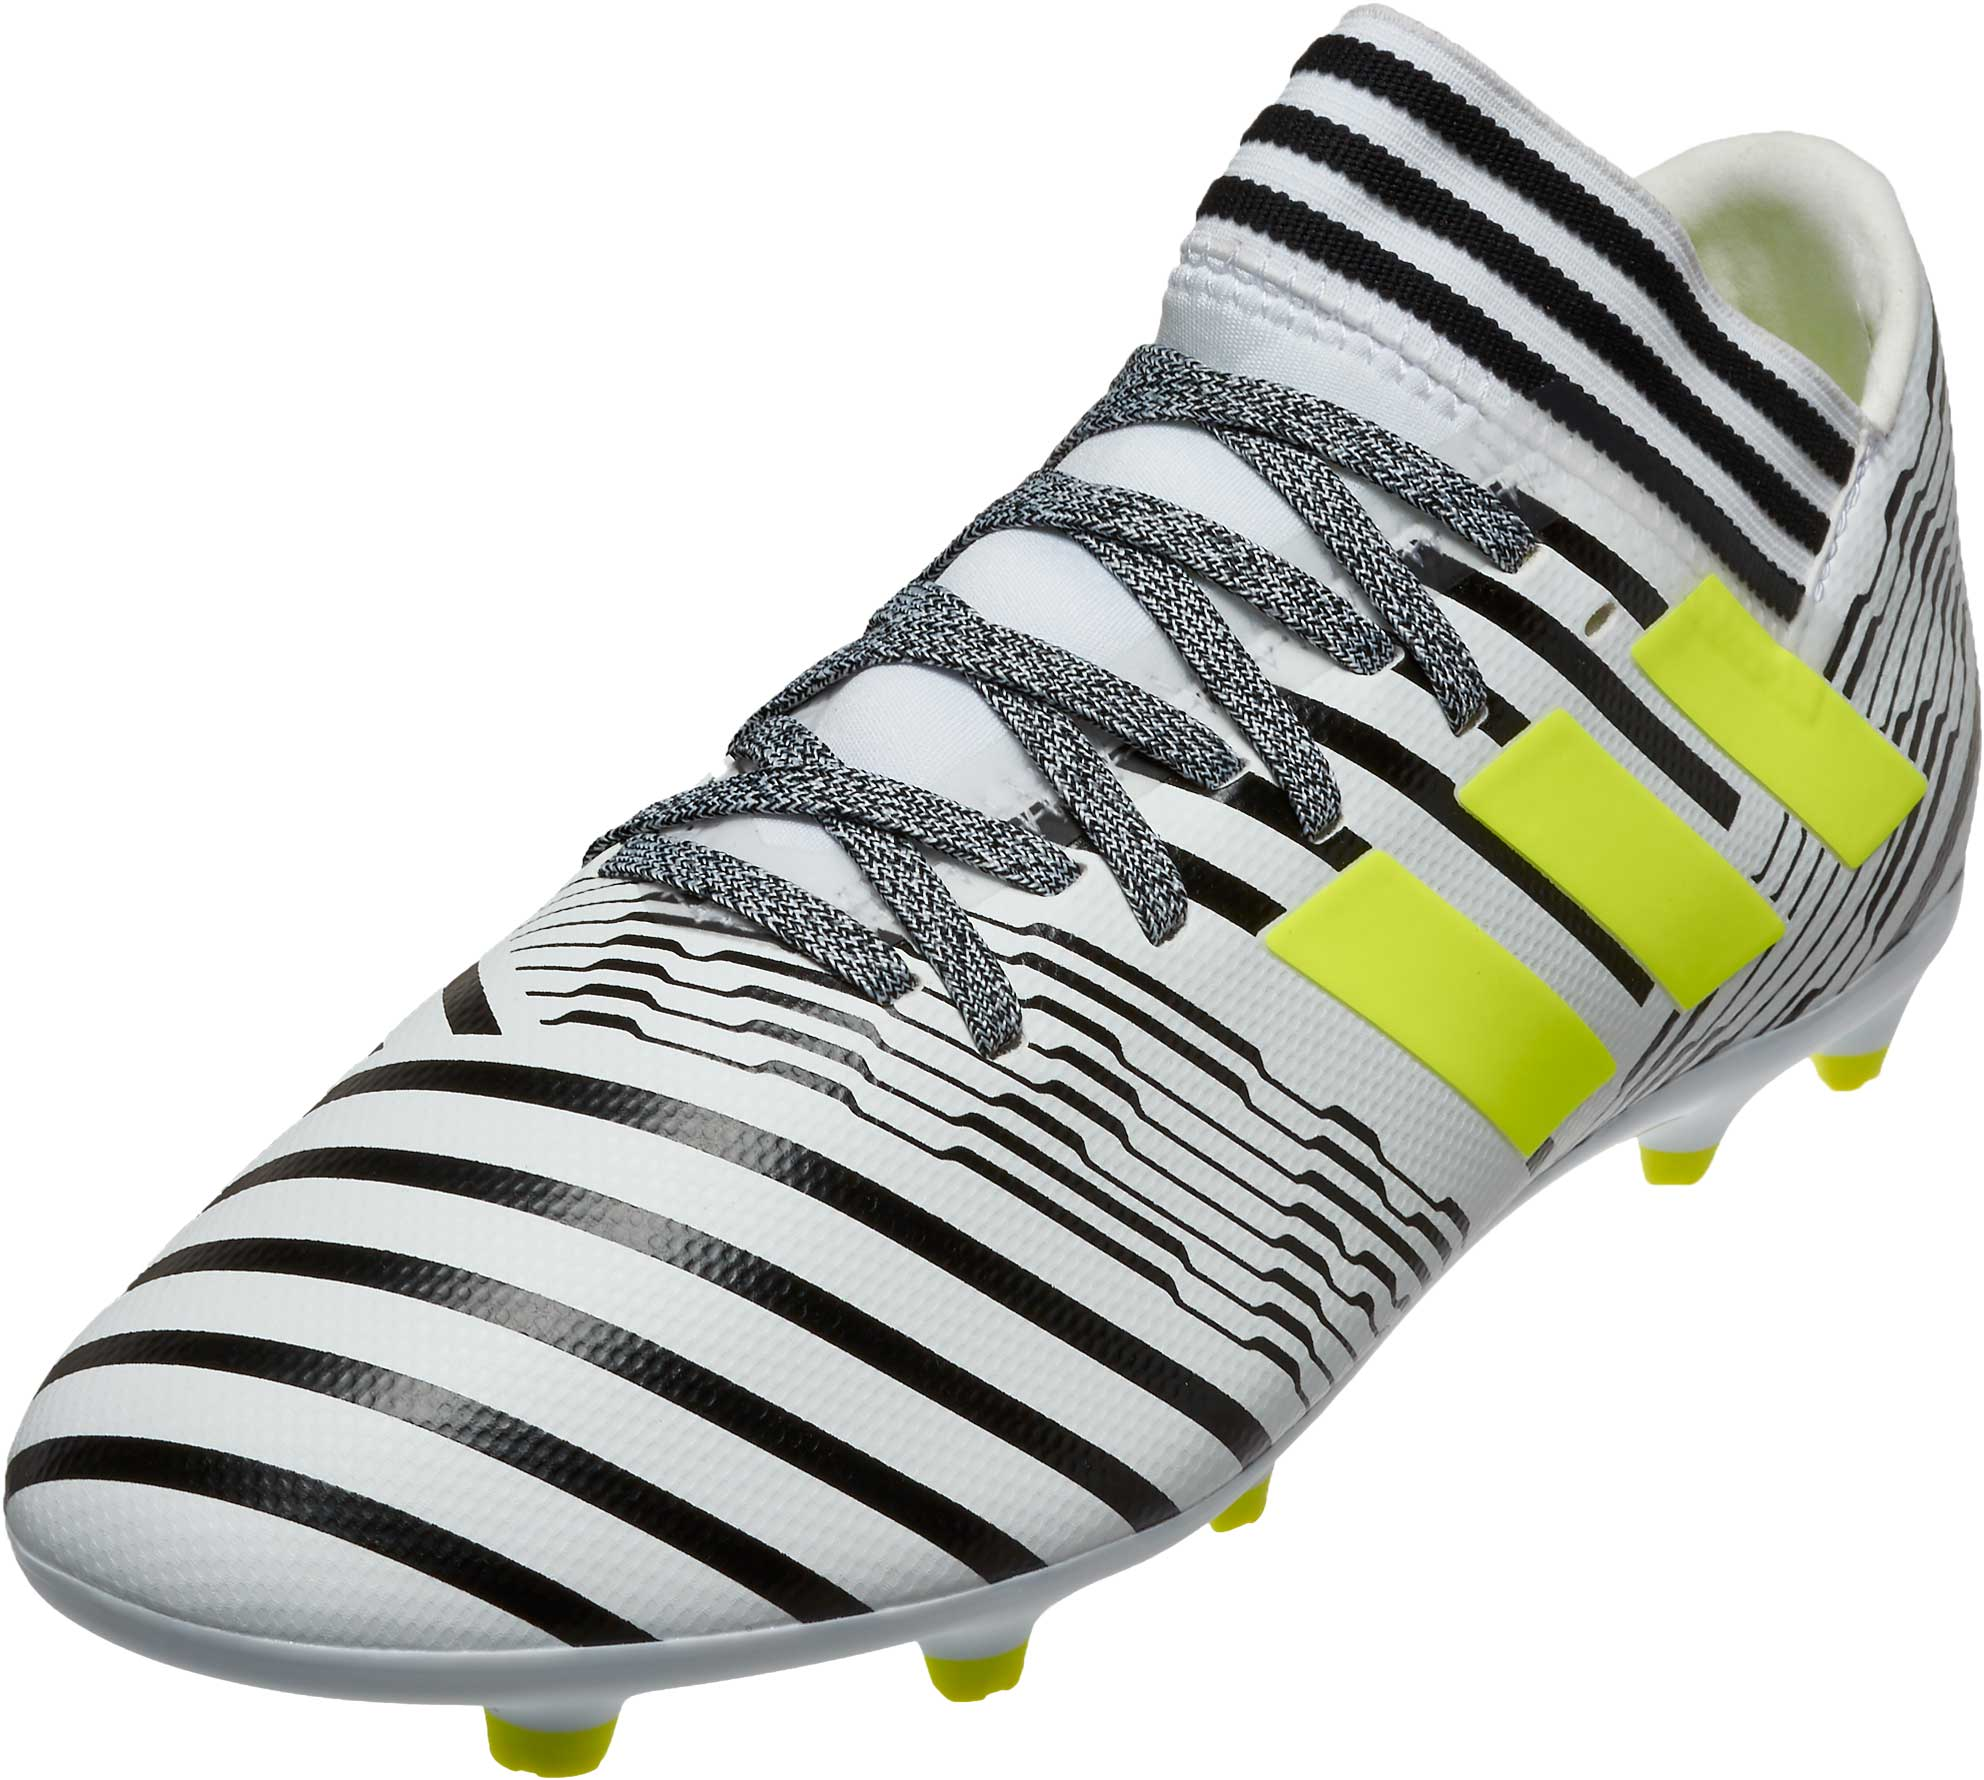 442e3b16852436 adidas Kids Nemeziz 17.3 FG Soccer Cleats - White   Solar Yellow ...